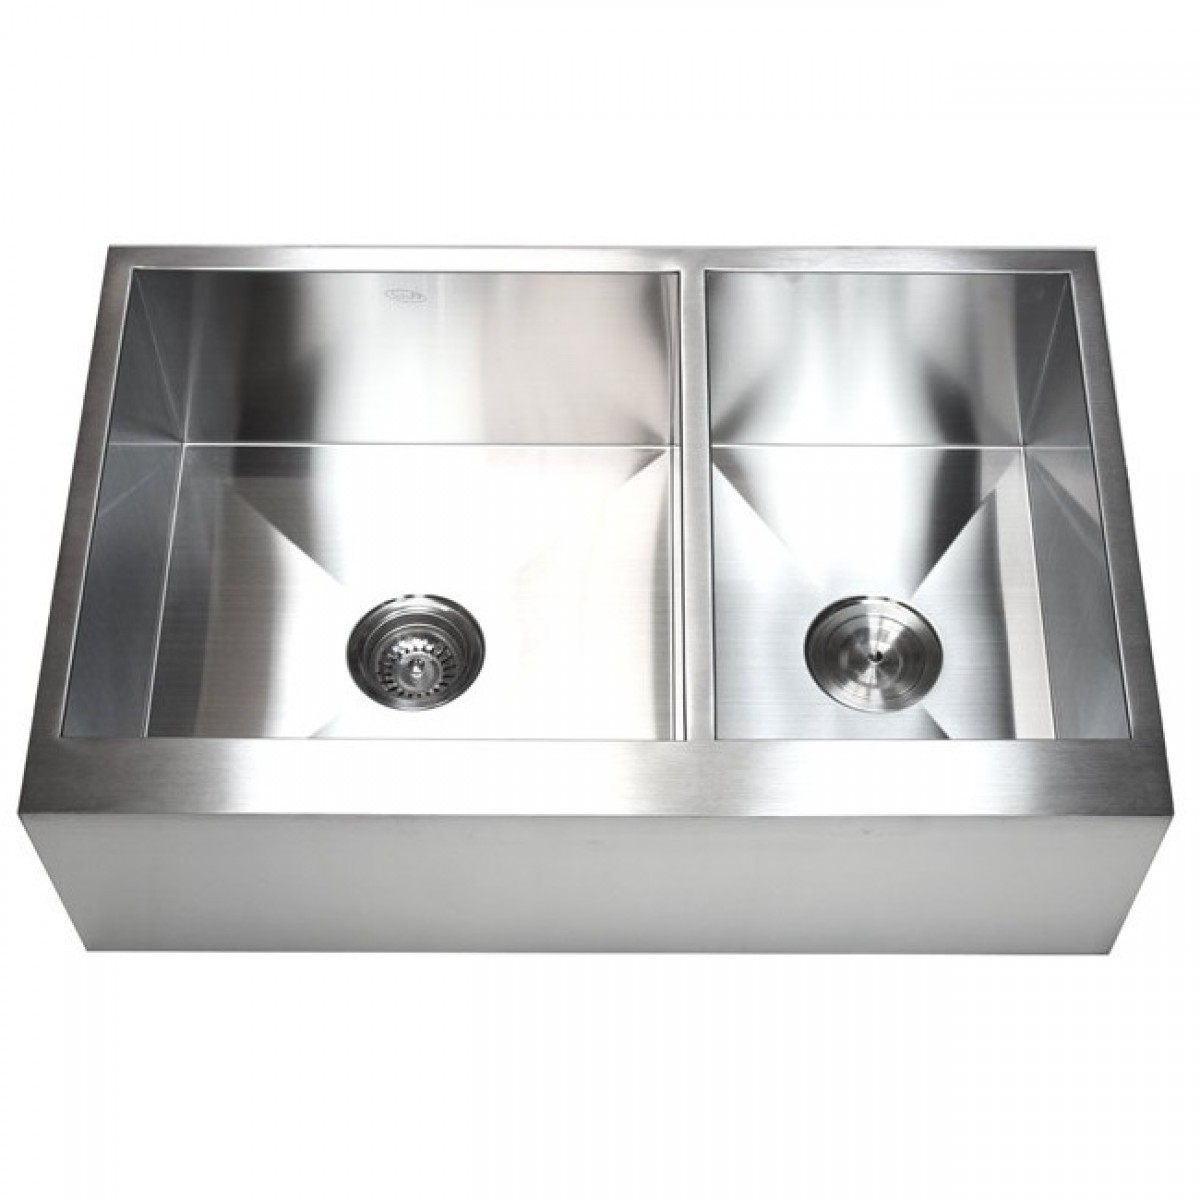 Best Kitchen Gallery: 33 Inch Stainless Steel 6040 Double Bowl Flat Front Farm Apron of Flat Kitchen Sink on cal-ite.com